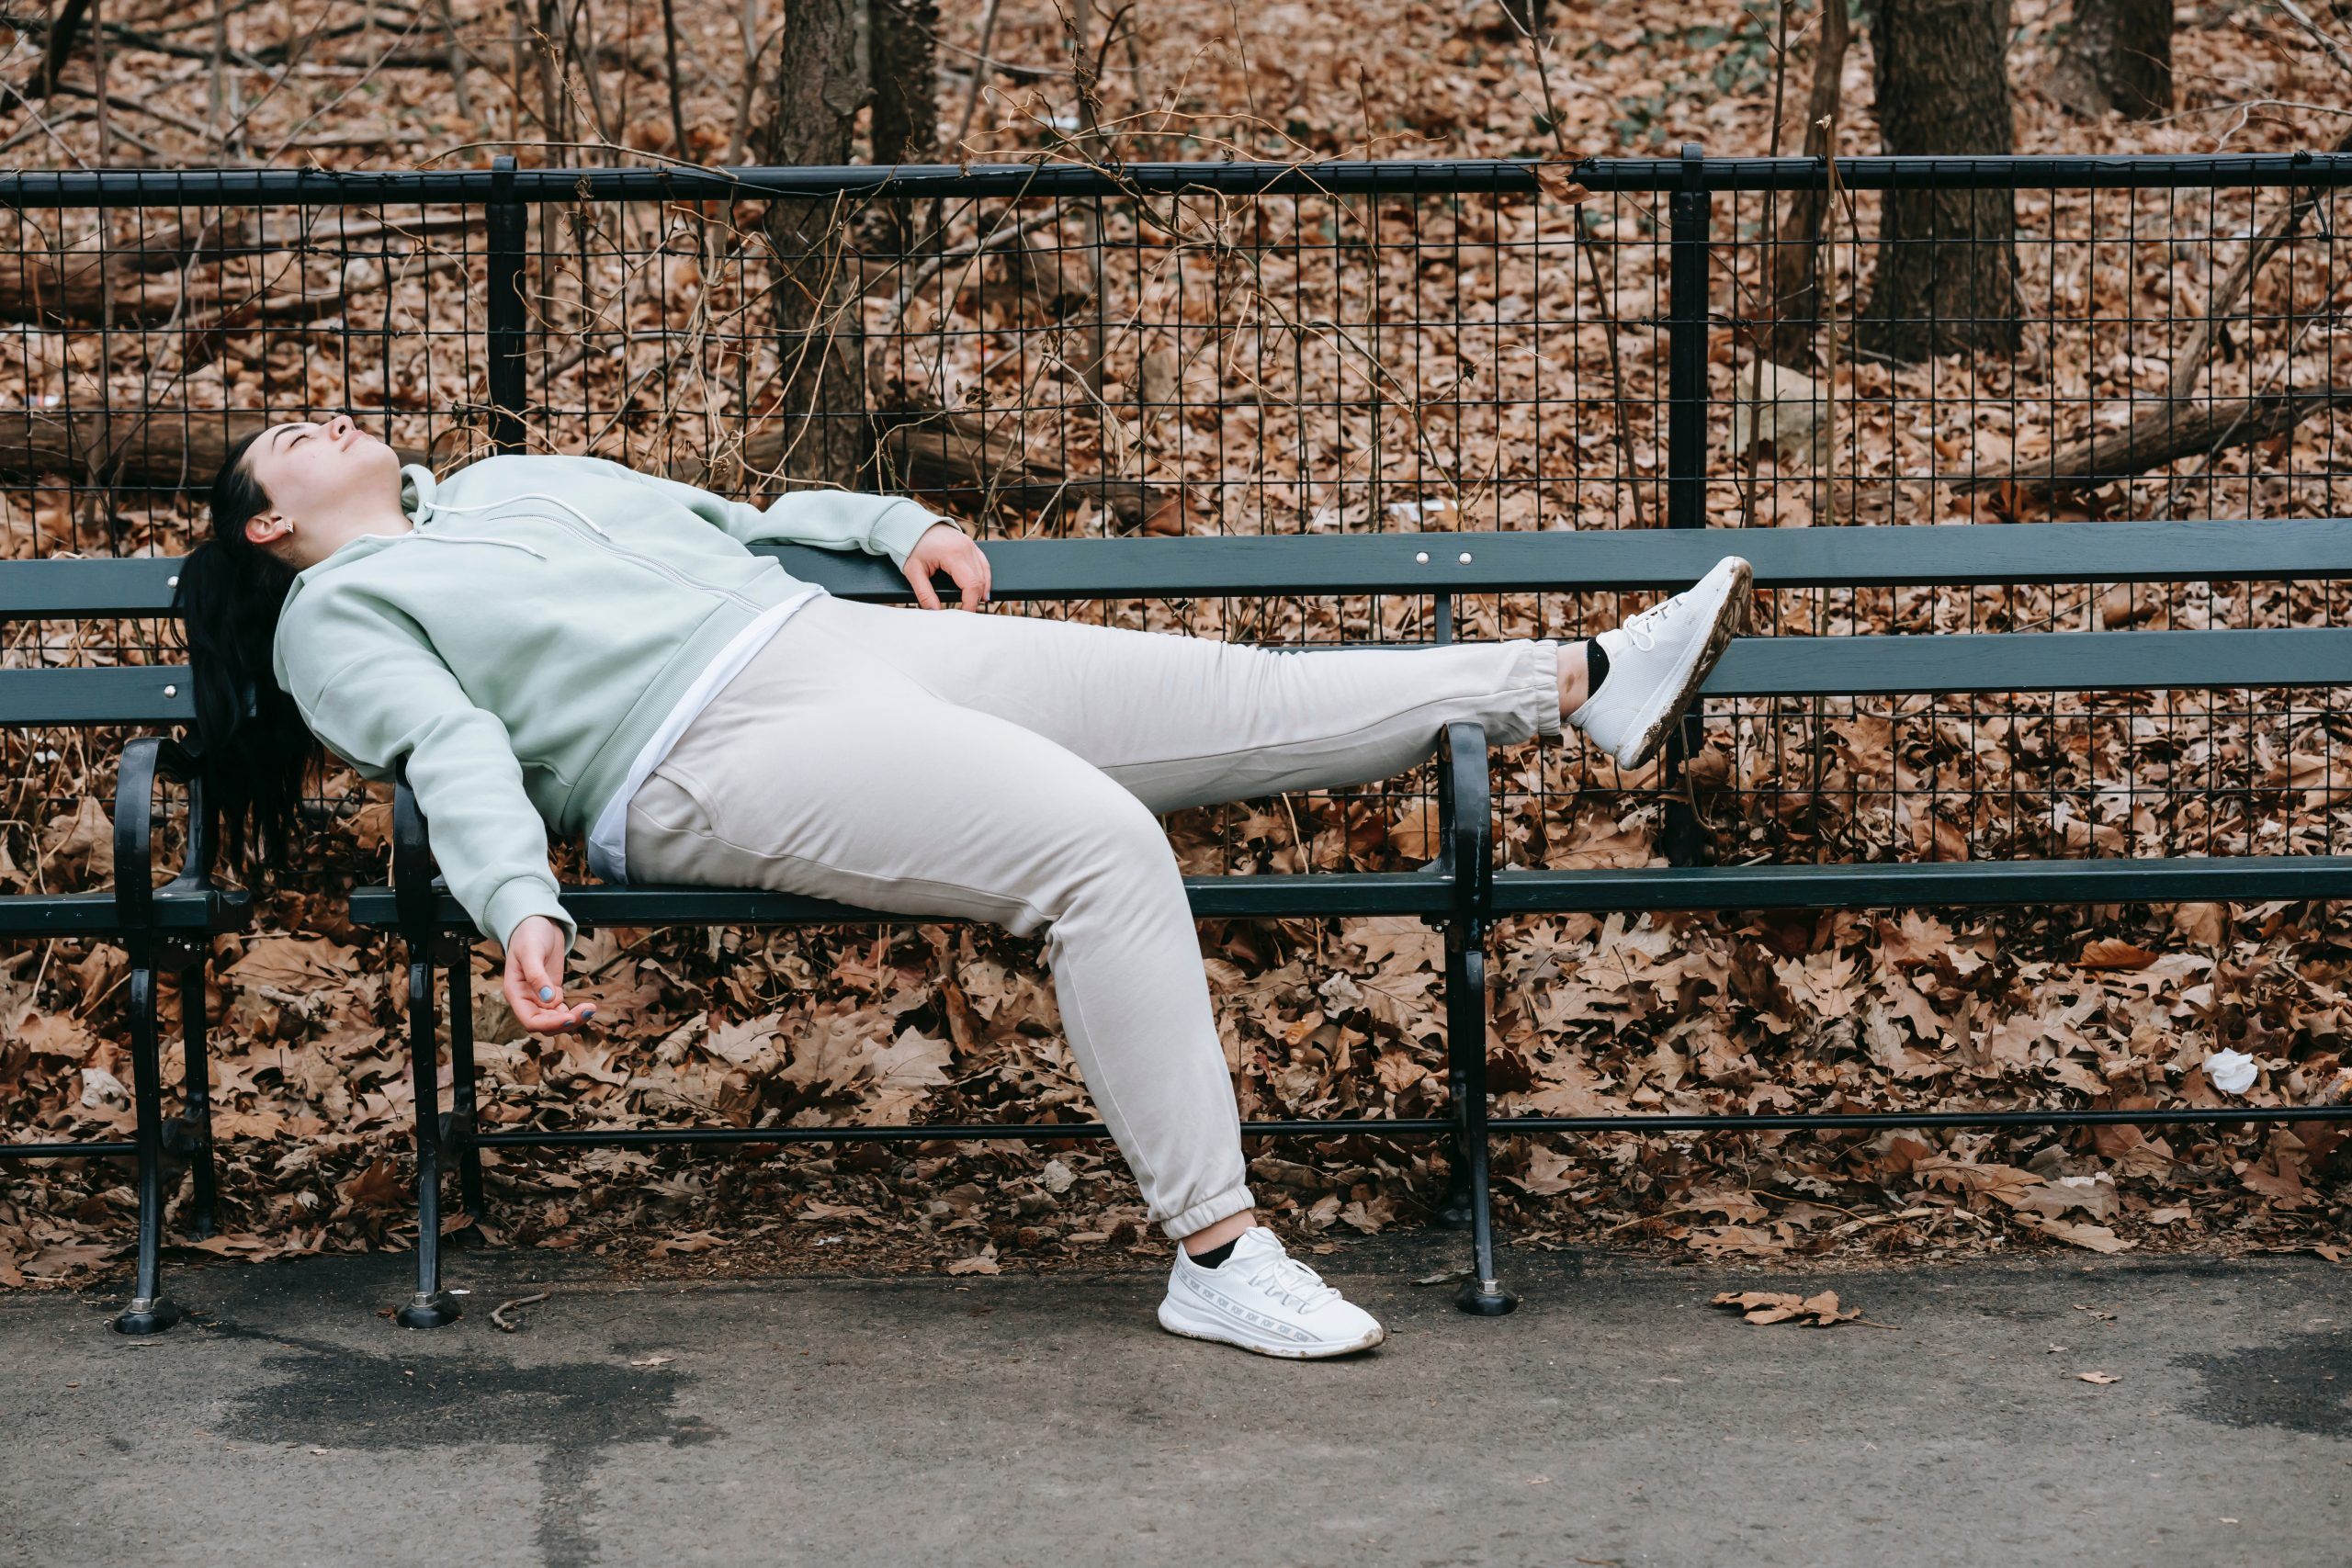 Tips to Prevent Fall and Slip Accidents